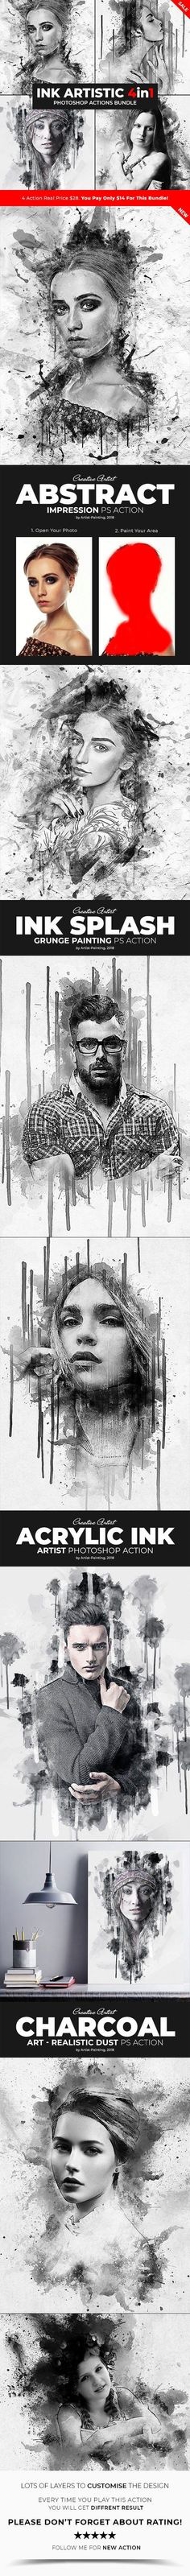 Ink Artistic - 4in1 Photoshop Actions Bundle #collection #AdobePhotoshop #PhotoEditing #photo #DesignSet #graphic #DesignCollection #GraphicRiver #effect #PhotoshopAddon #photoeffects #photoshopaction #design #sets #photoshopresource #GraphicDesign #addon #PhotoShop #photoactions #GraphicDesigner